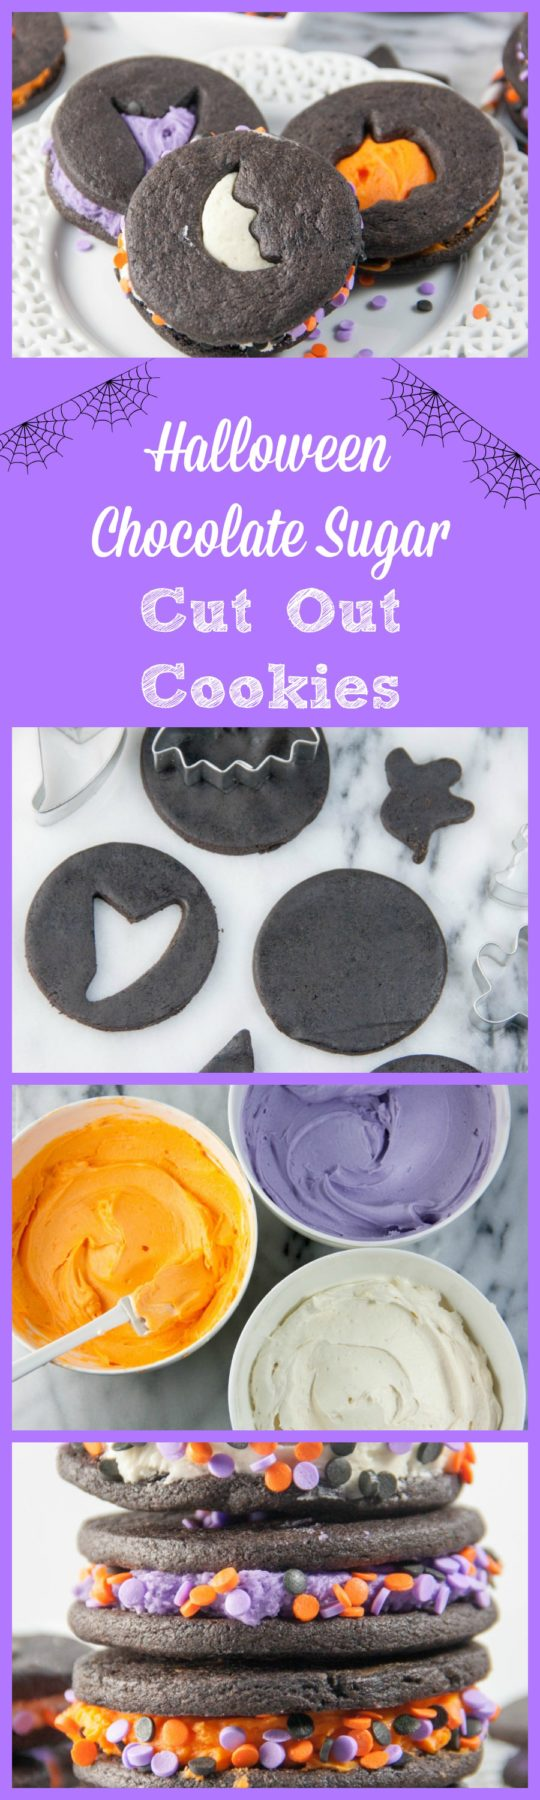 chocolate cookie Archives - Boston Girl Bakes